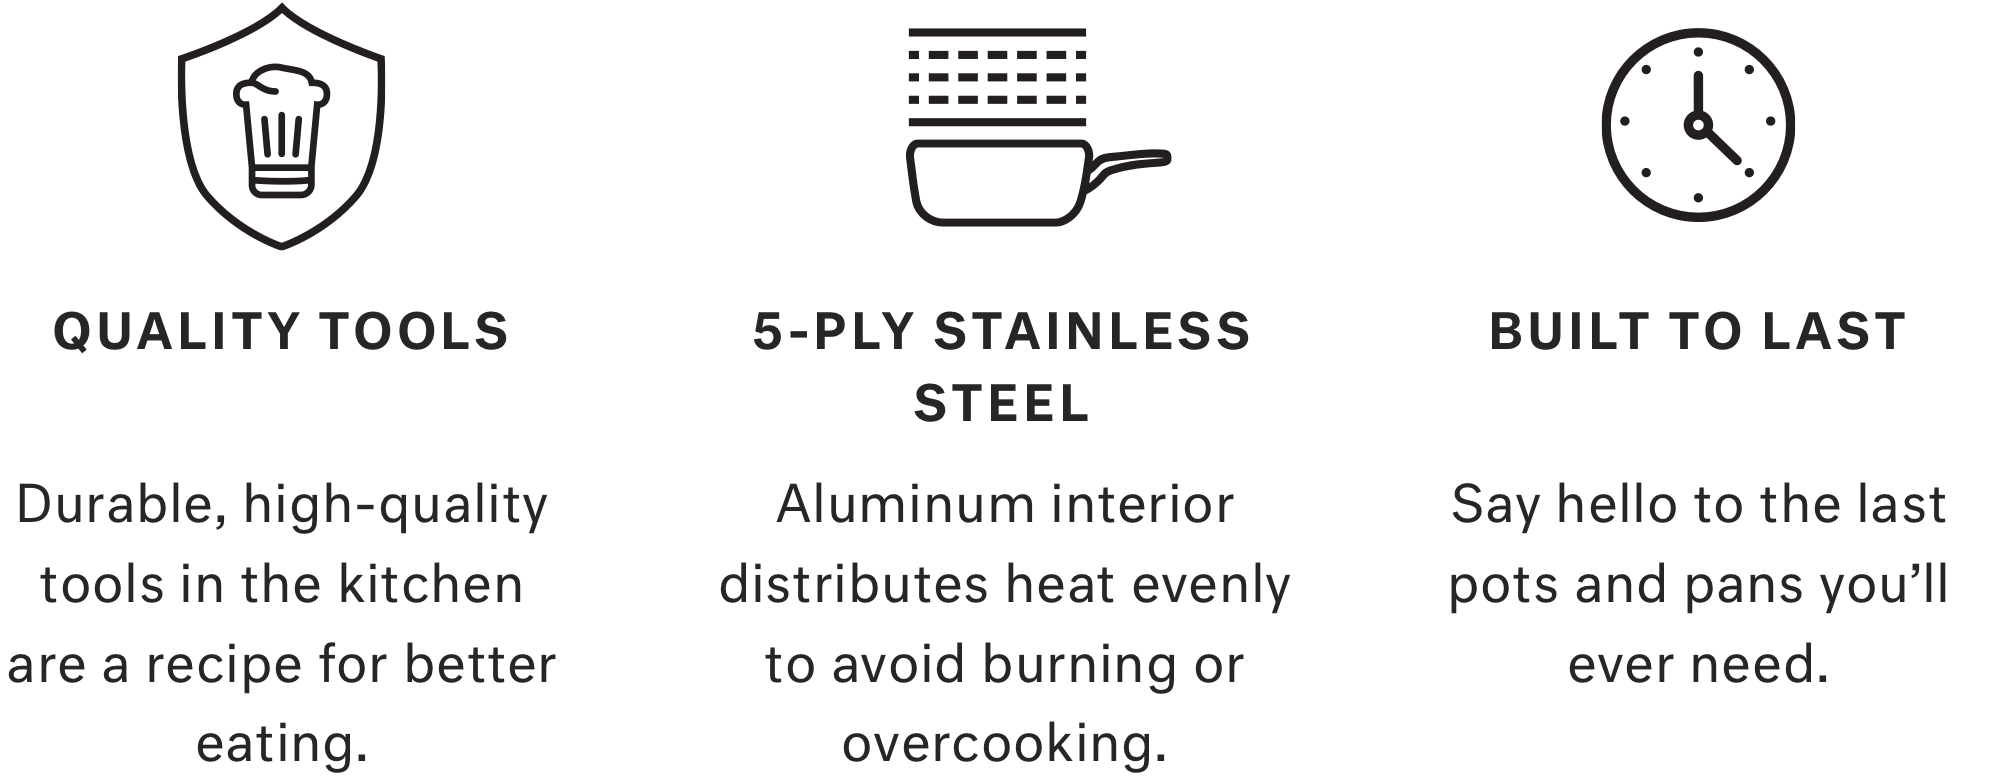 quality tools, 5-ply stainless steel, built to last